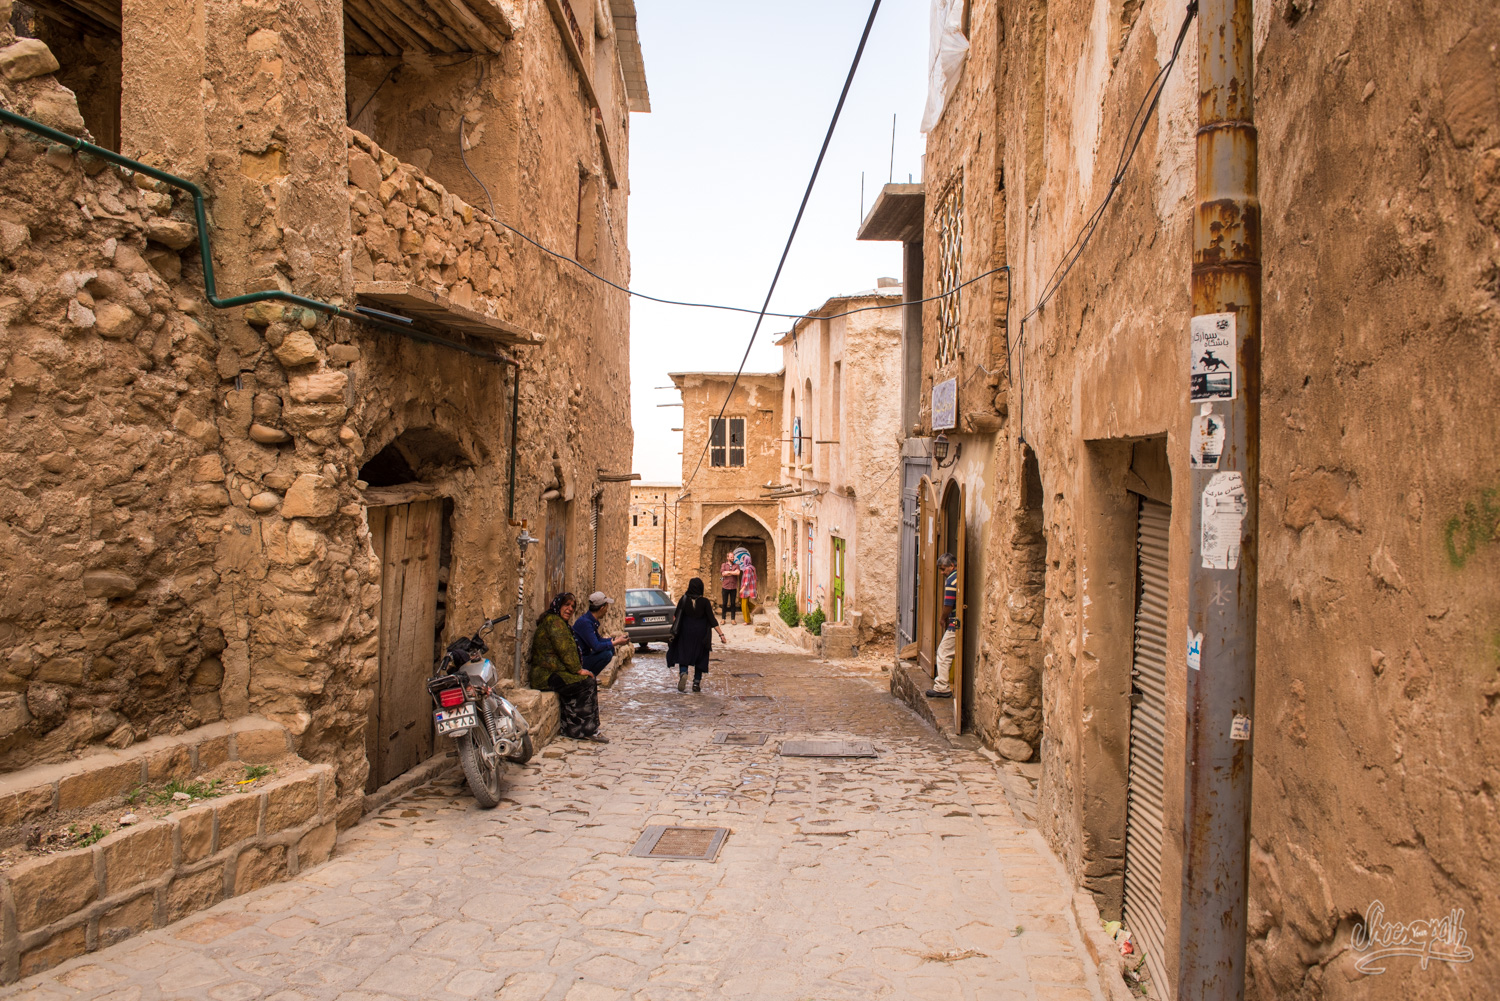 In the old streets of Ghalat